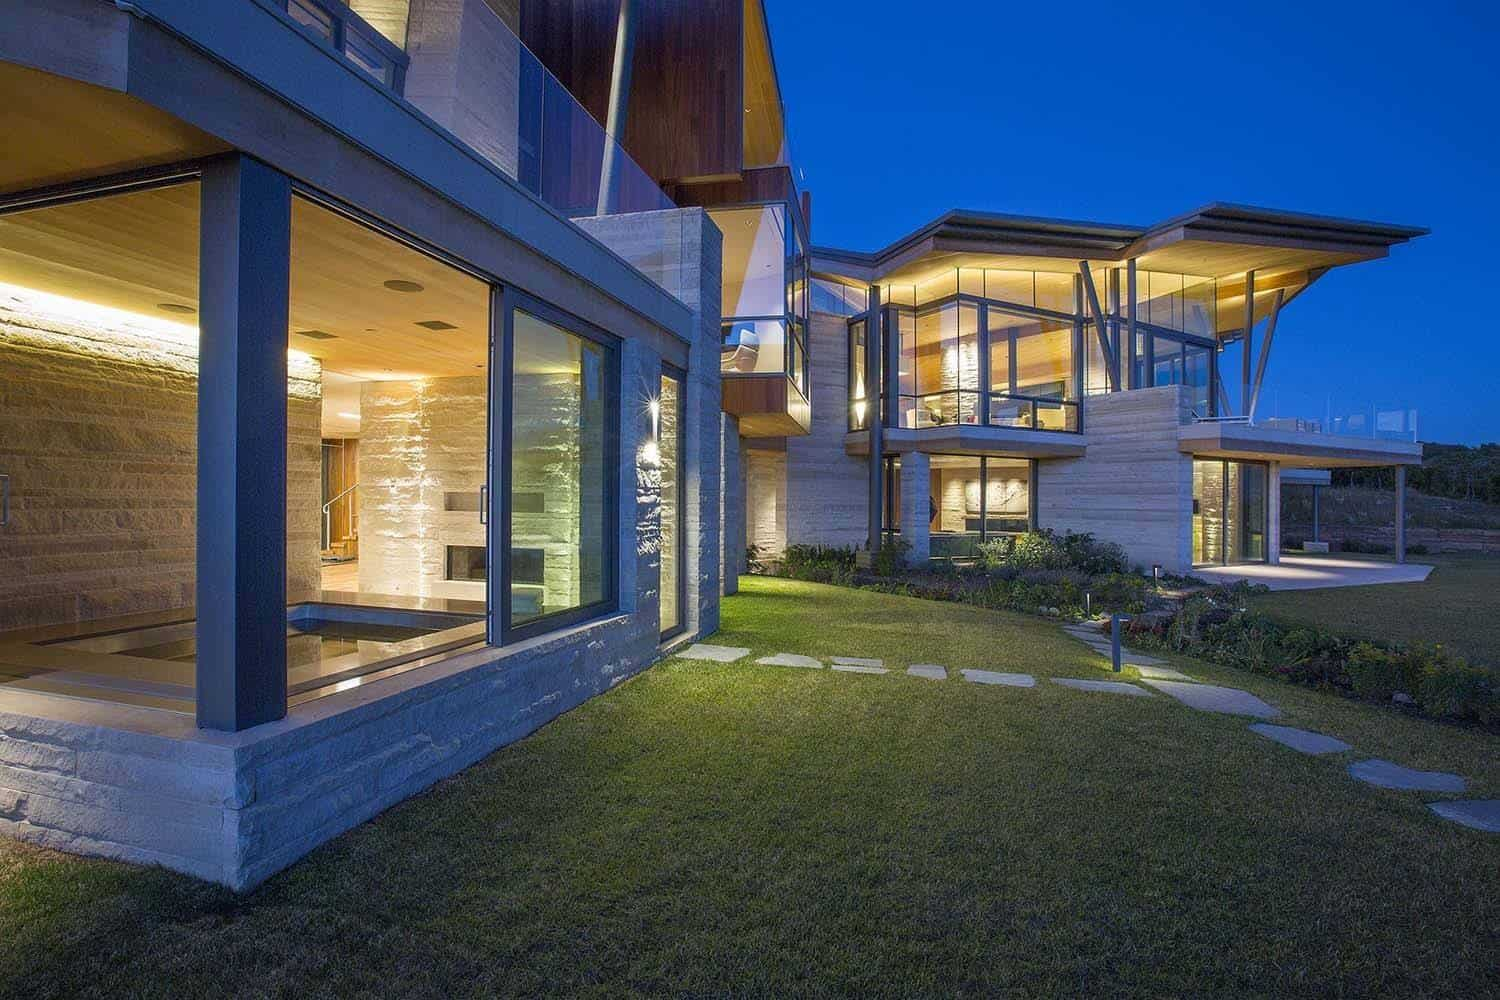 Modern-Residence-Colorado-Poss Architecture-49-1 Kindesign